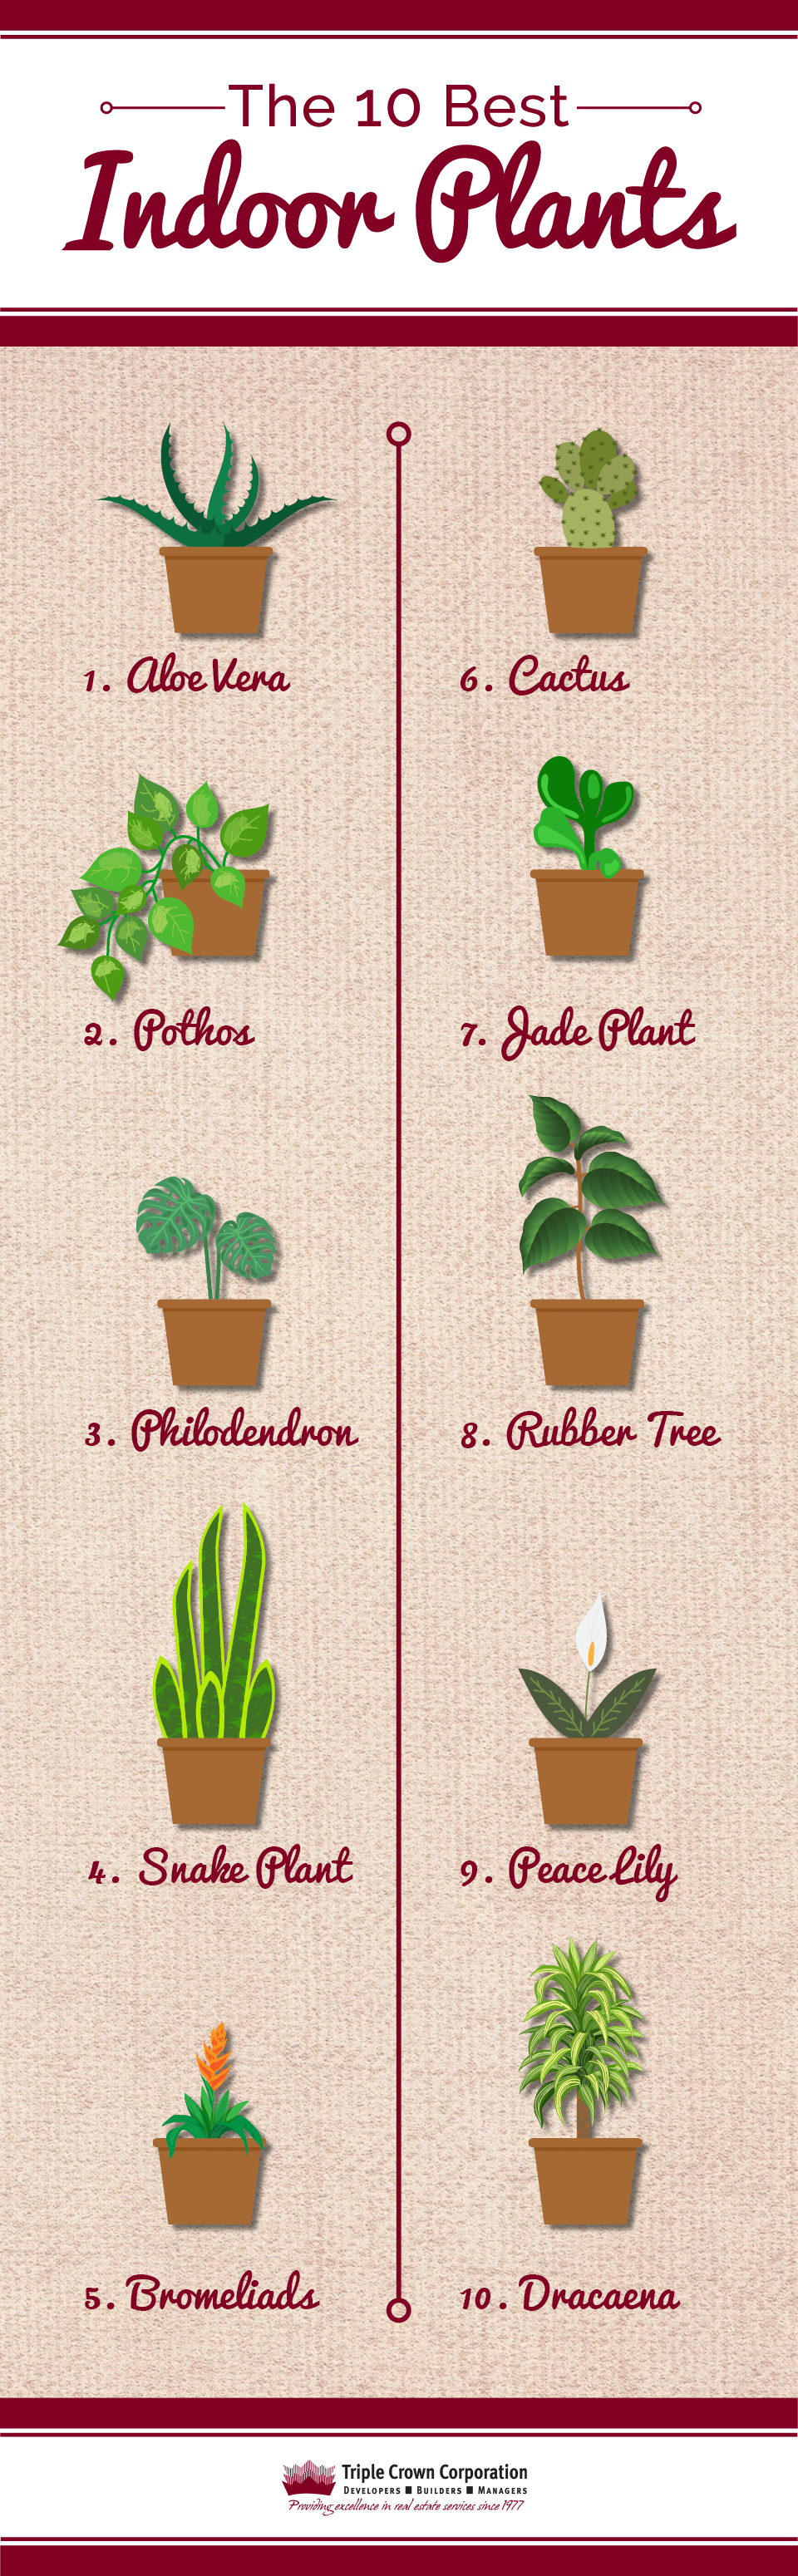 10 Best Indoor Plants Infographic